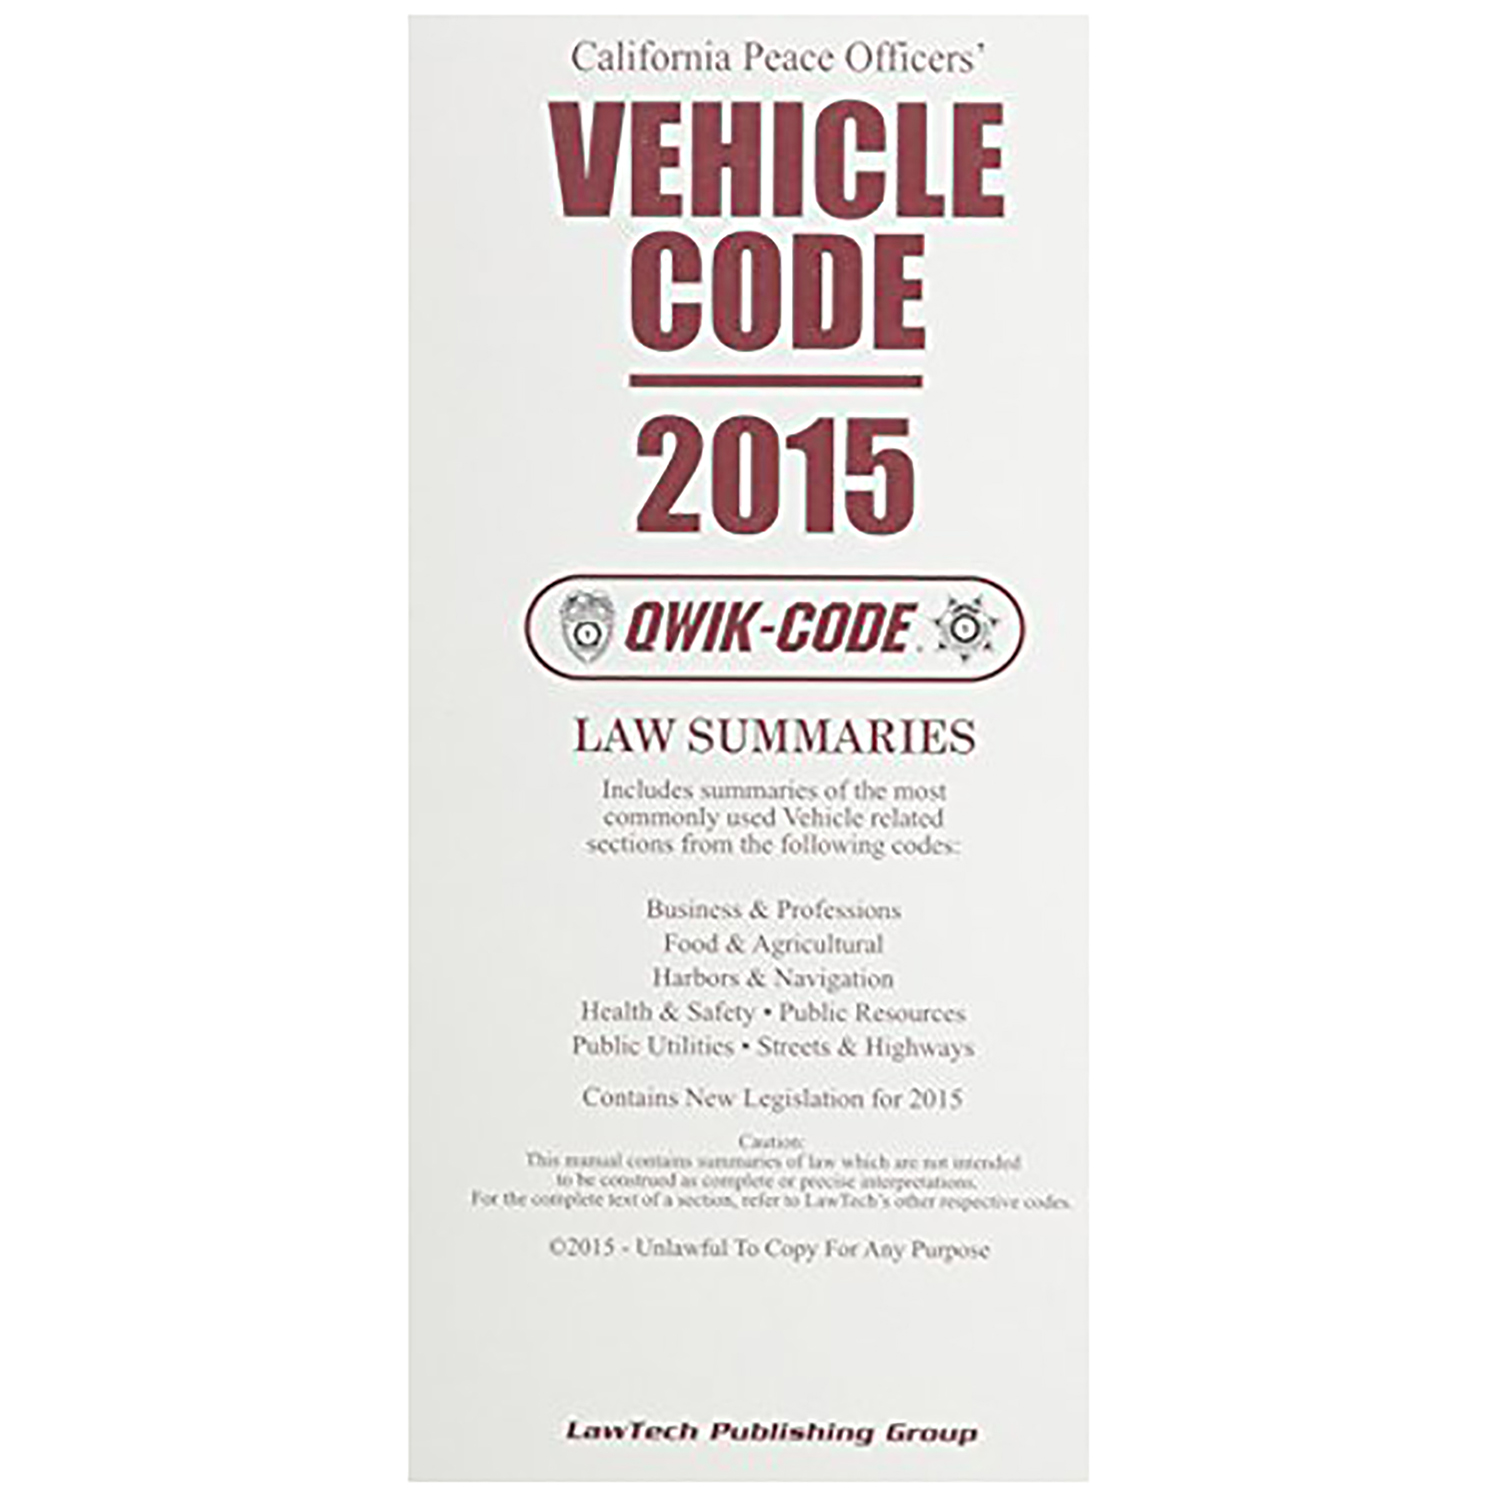 LawTech California Peace Officers Vehicle Code 2015 Qwik Cod